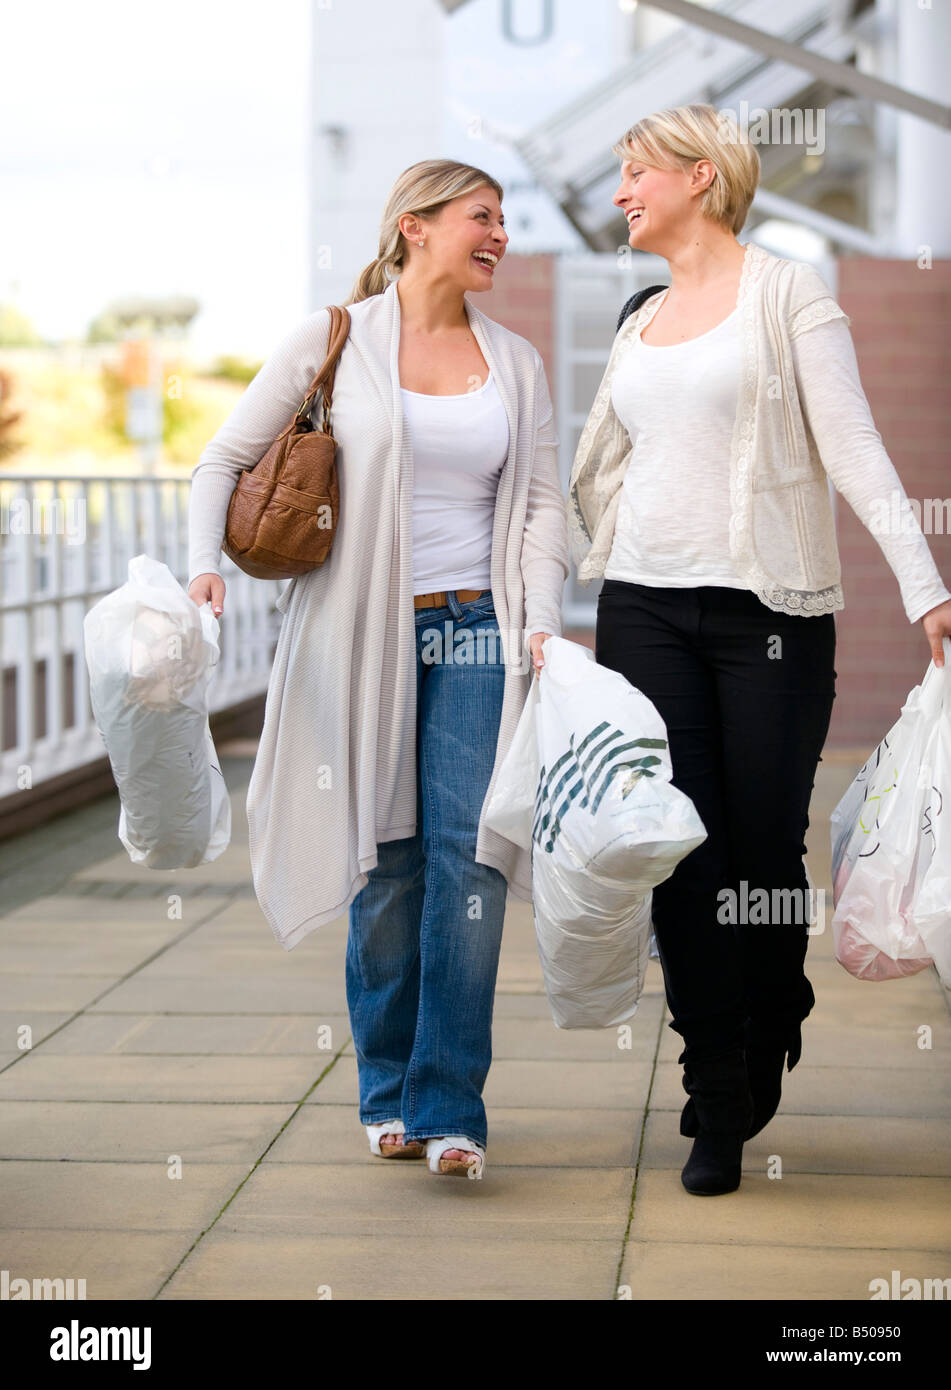 Two girls shopping - Stock Image